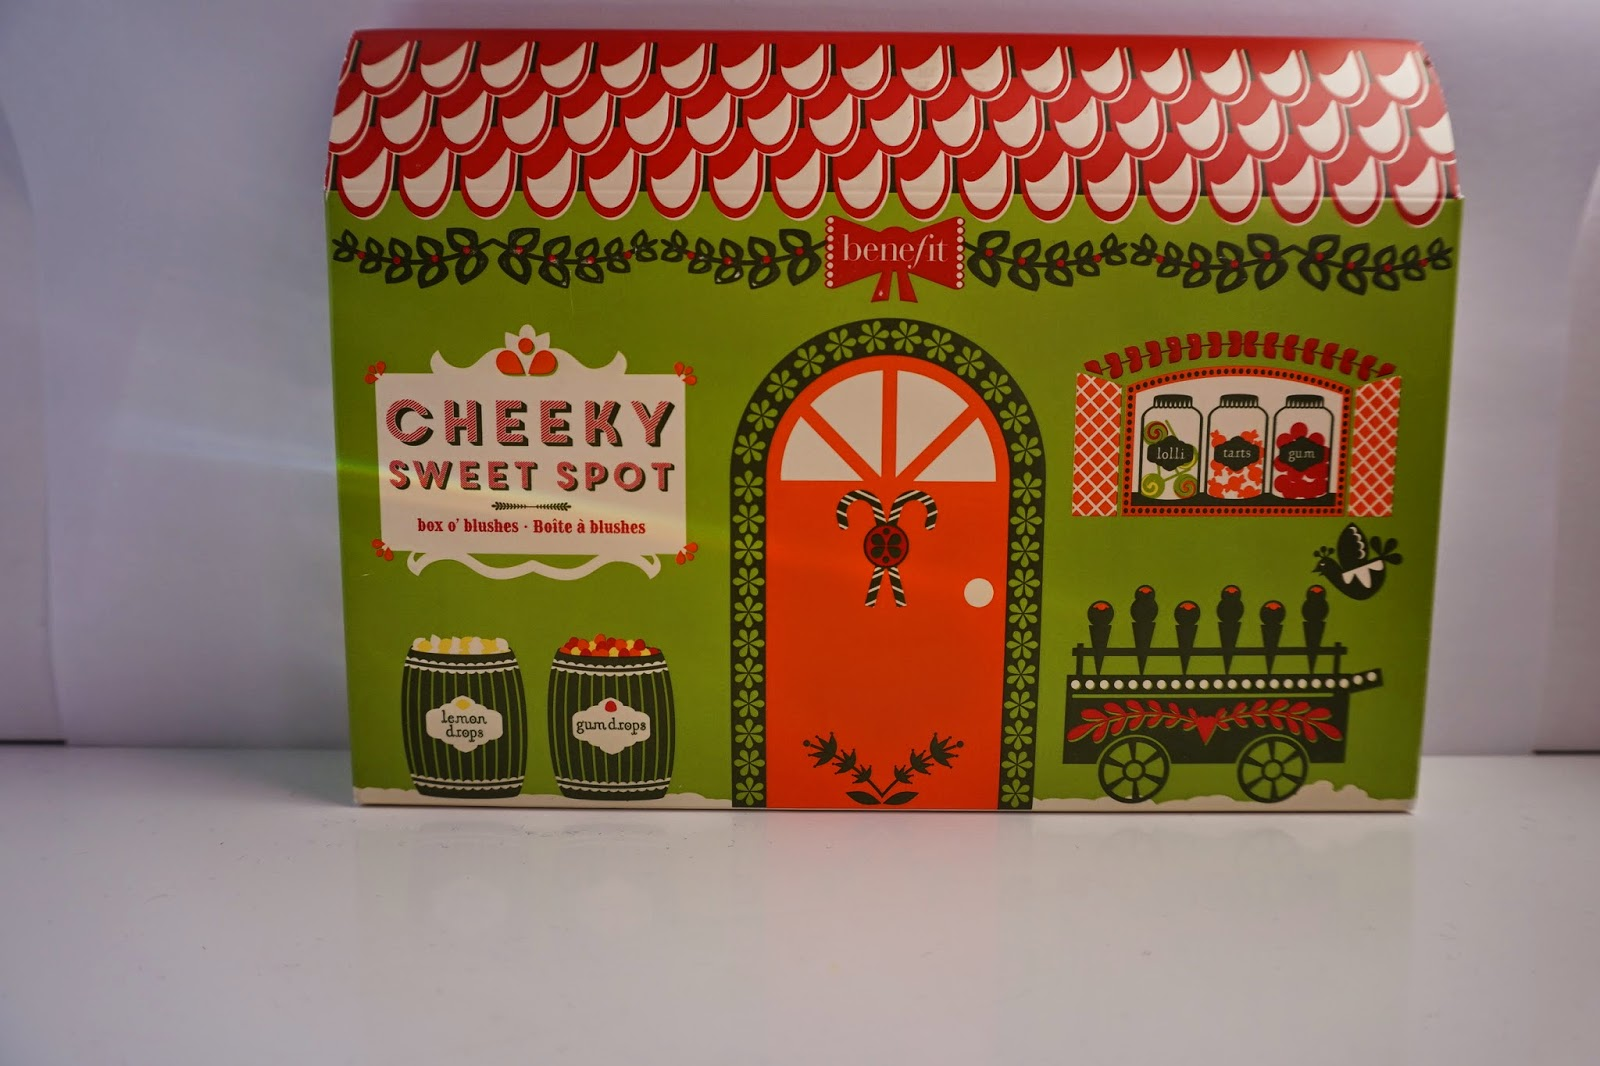 Should I Get It - Benefit Cheeky Sweet Spot - Dusty Foxes Beauty Blog